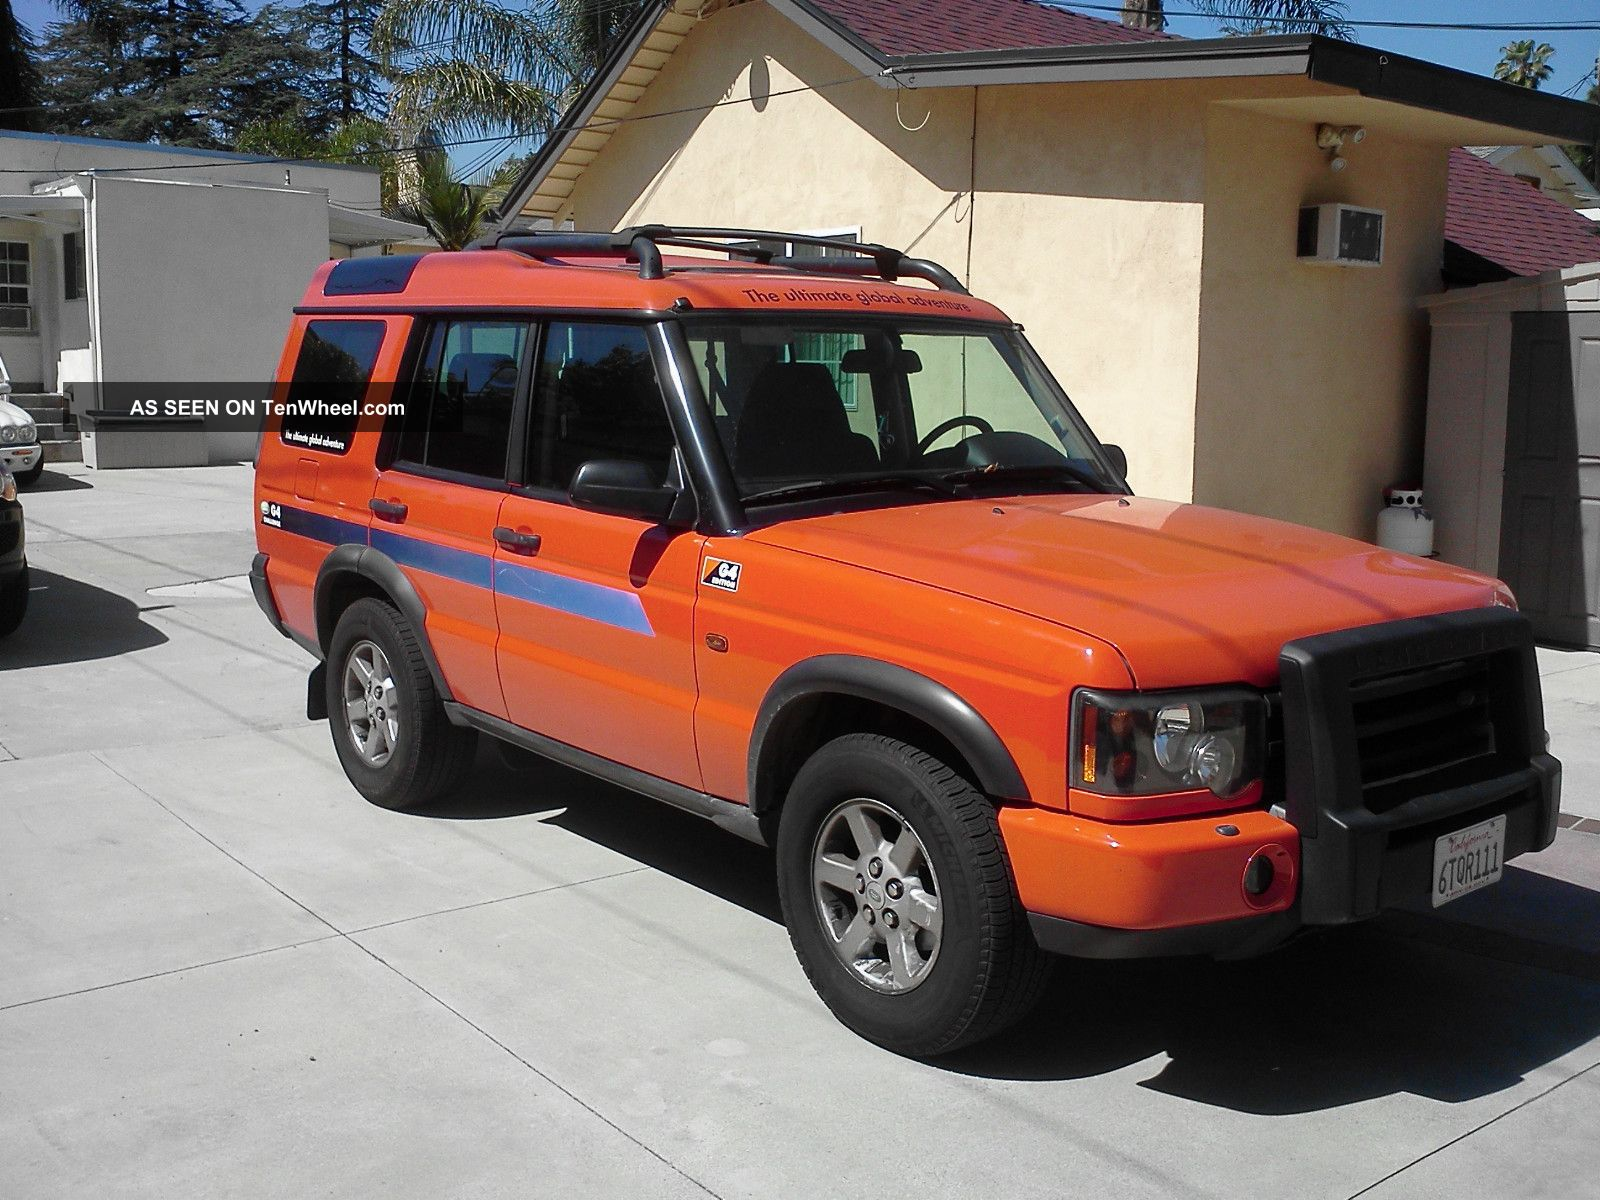 2004 Orange Land Rover Discovery G4 Lmited Edition